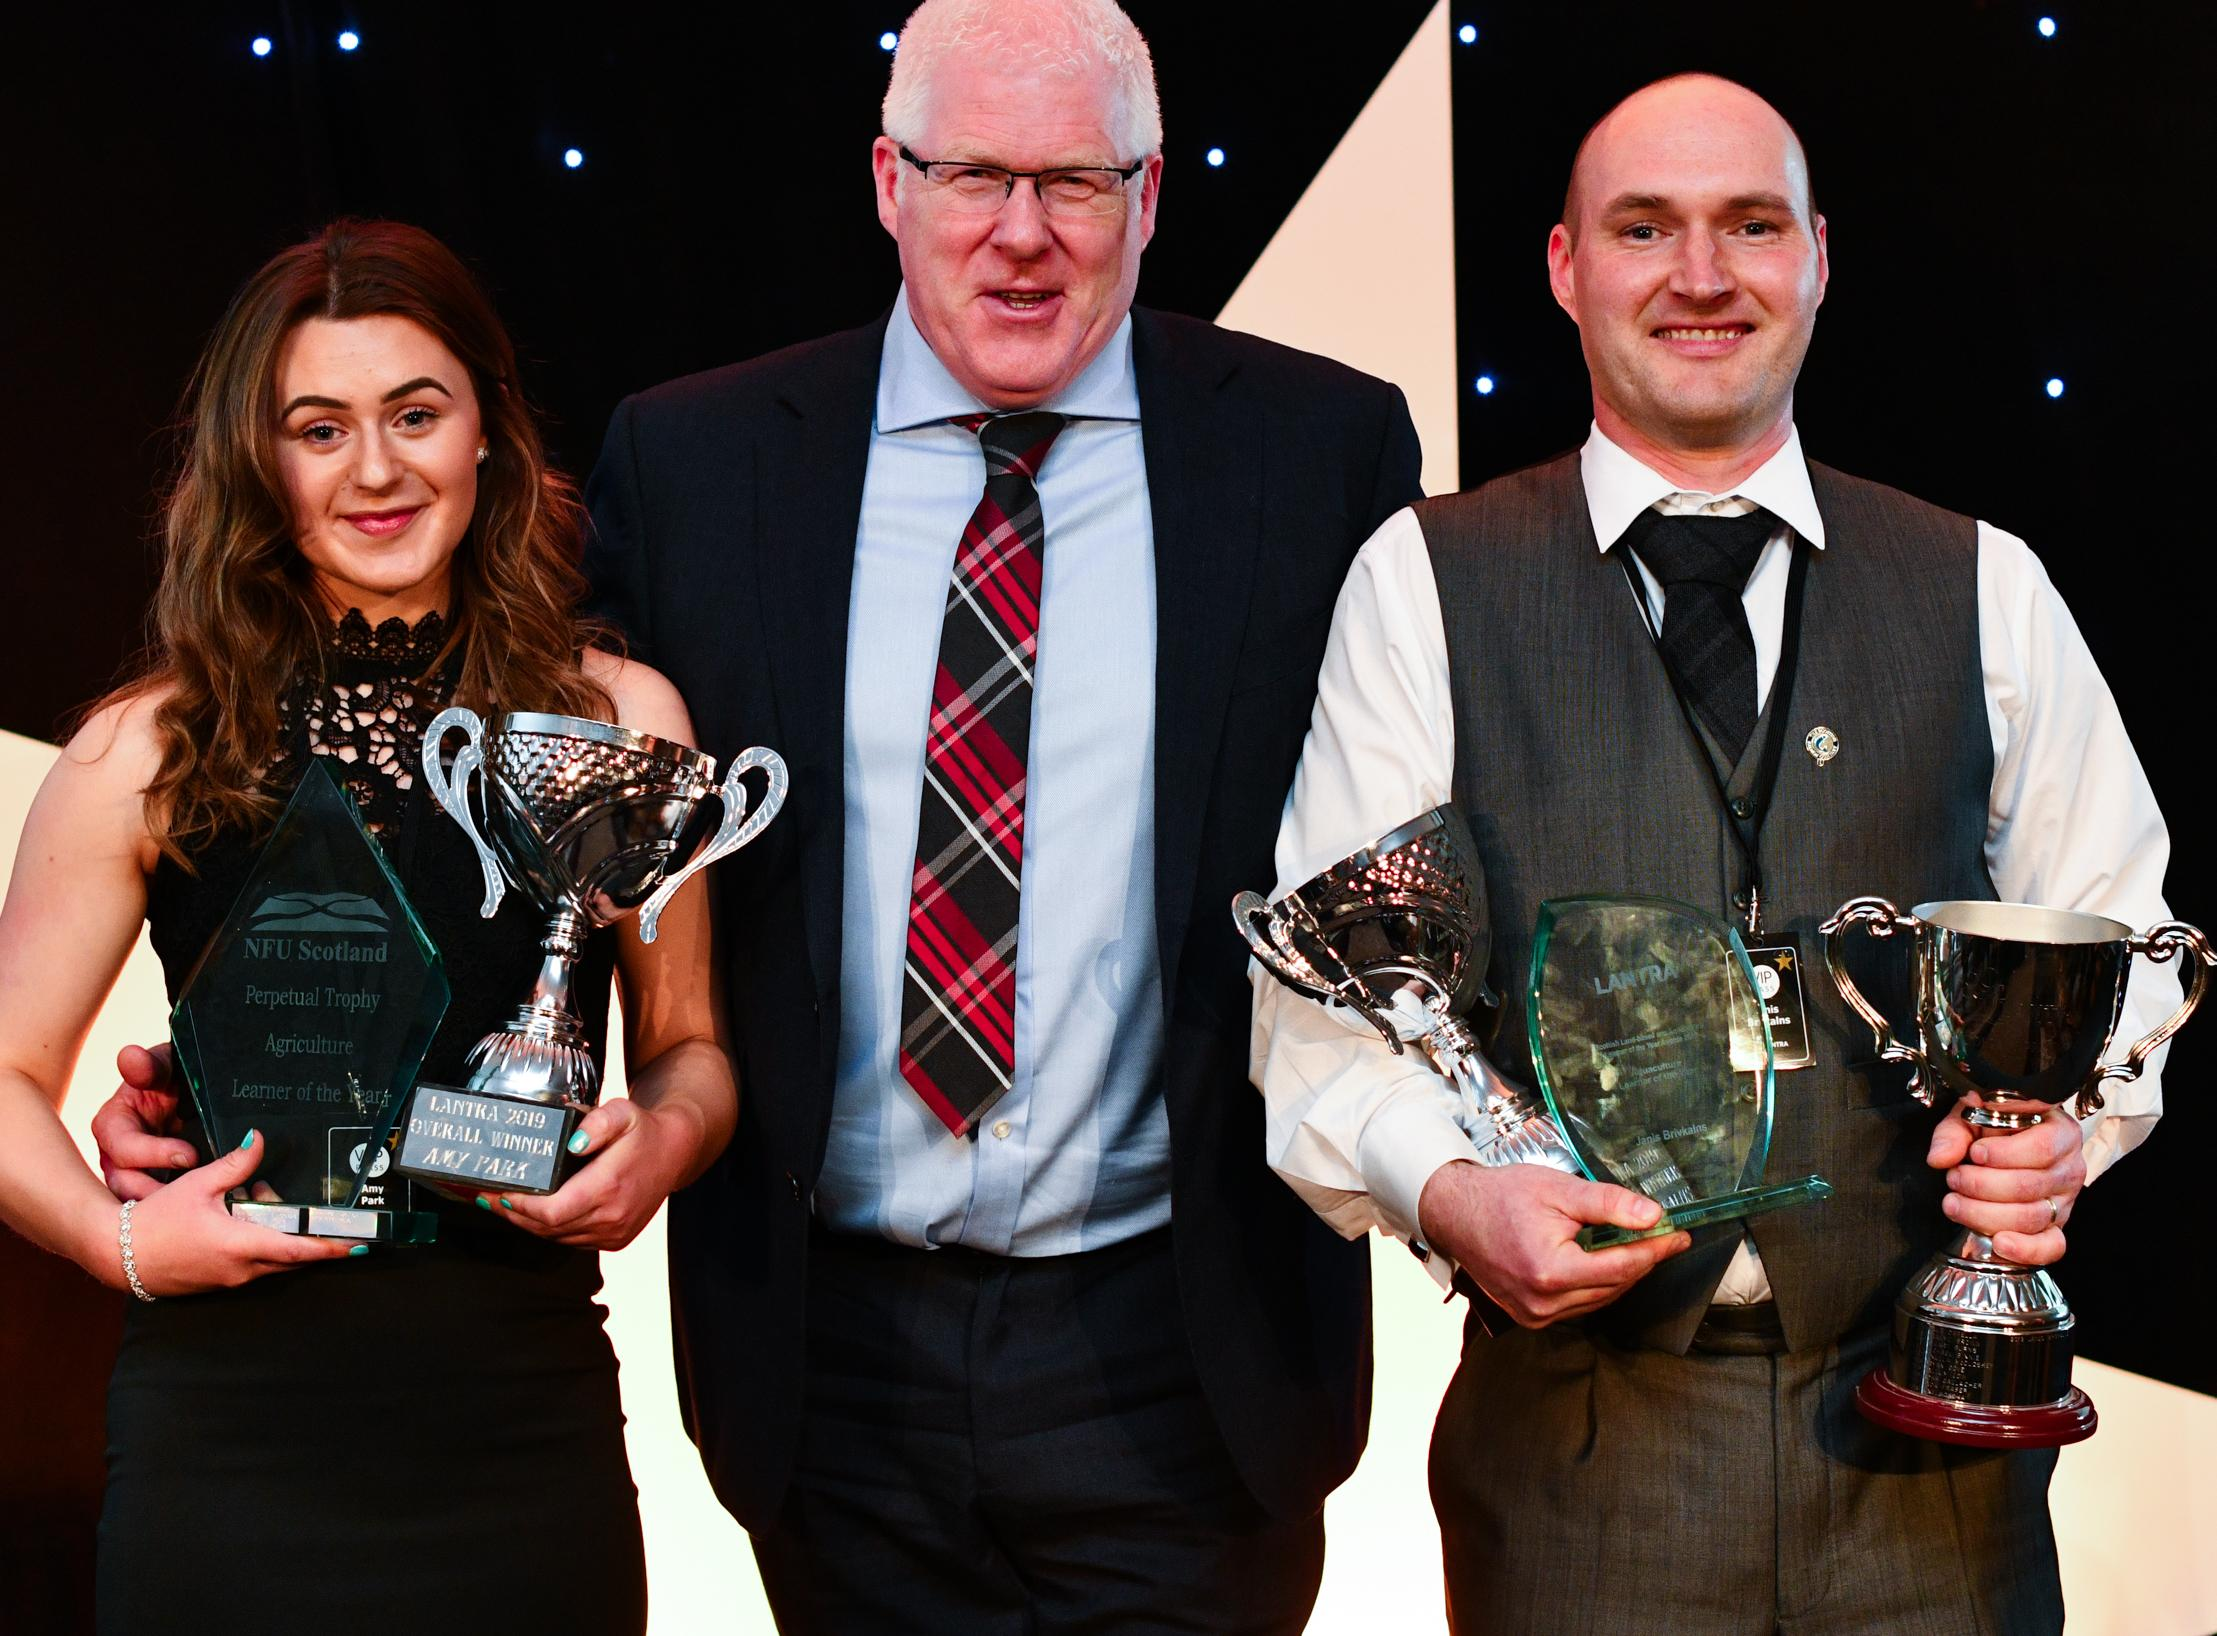 Joint overal learners of the year from Lantra Scotland event